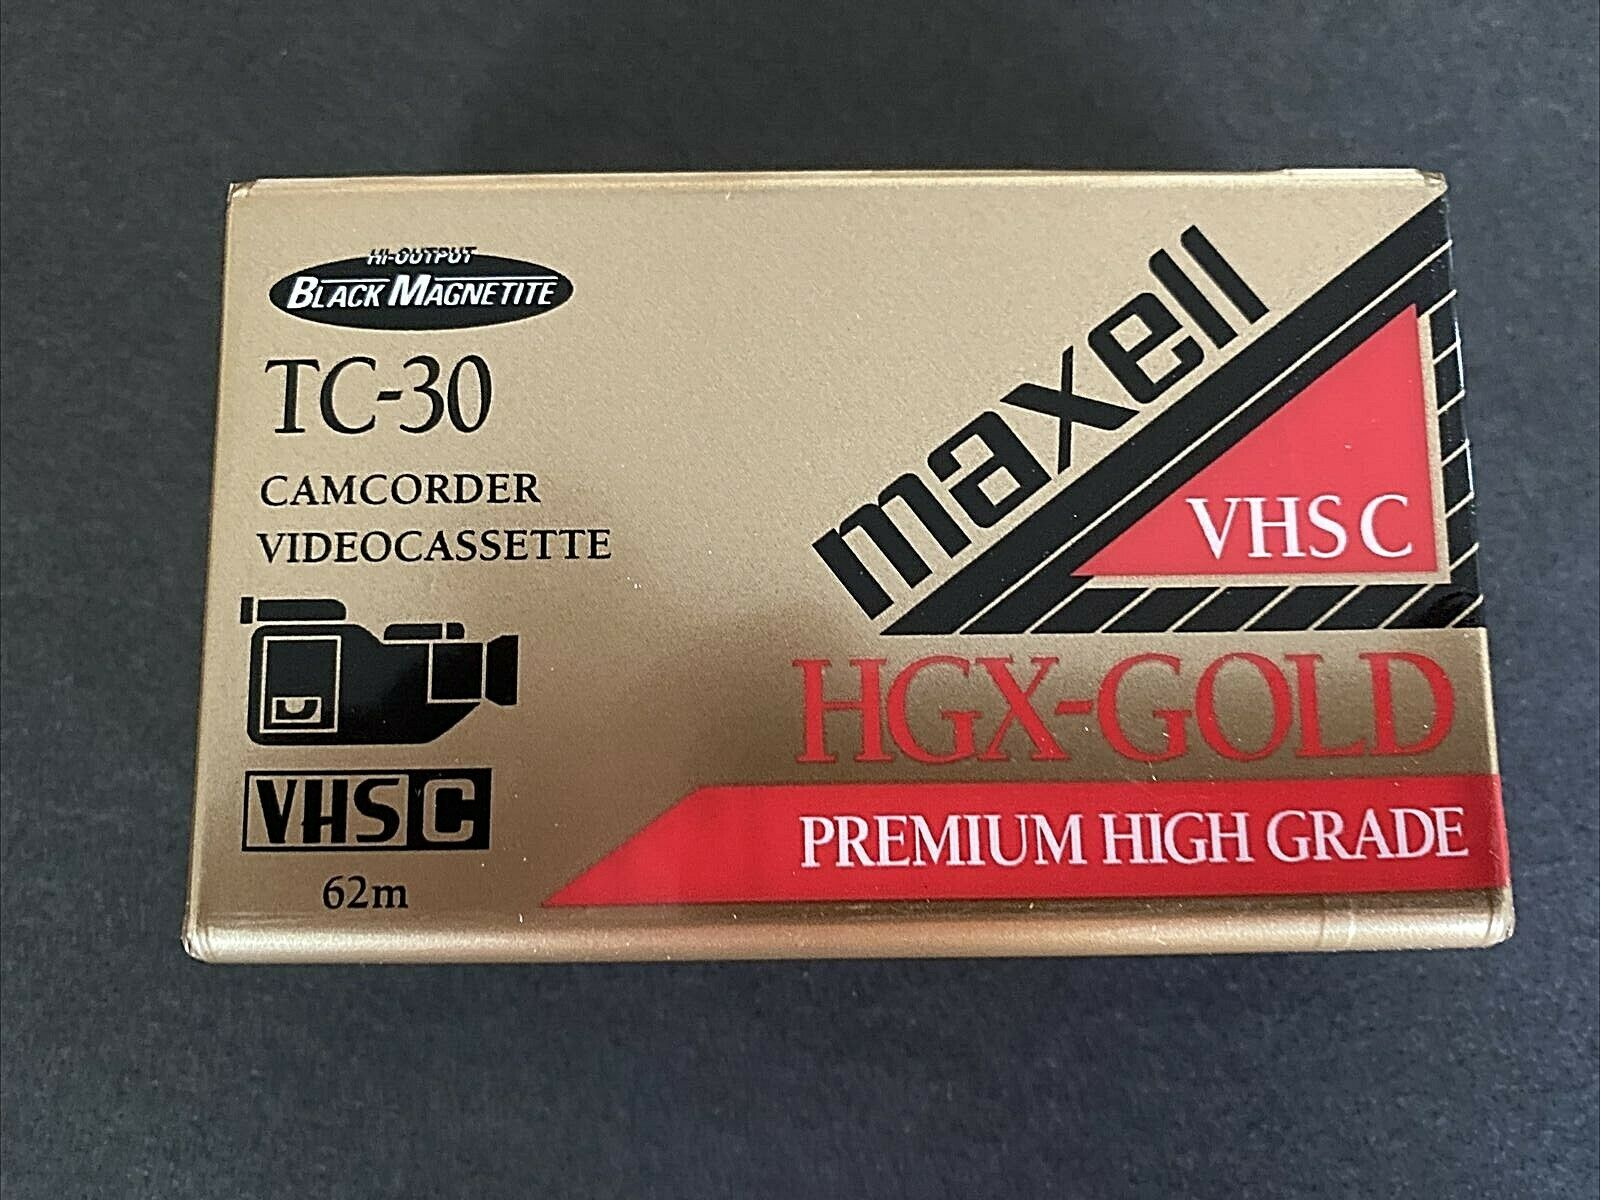 New MAXELL VHS-C Tape TC-30 HGX-Gold Camcorder Video Camera Cassette FREE SHIP